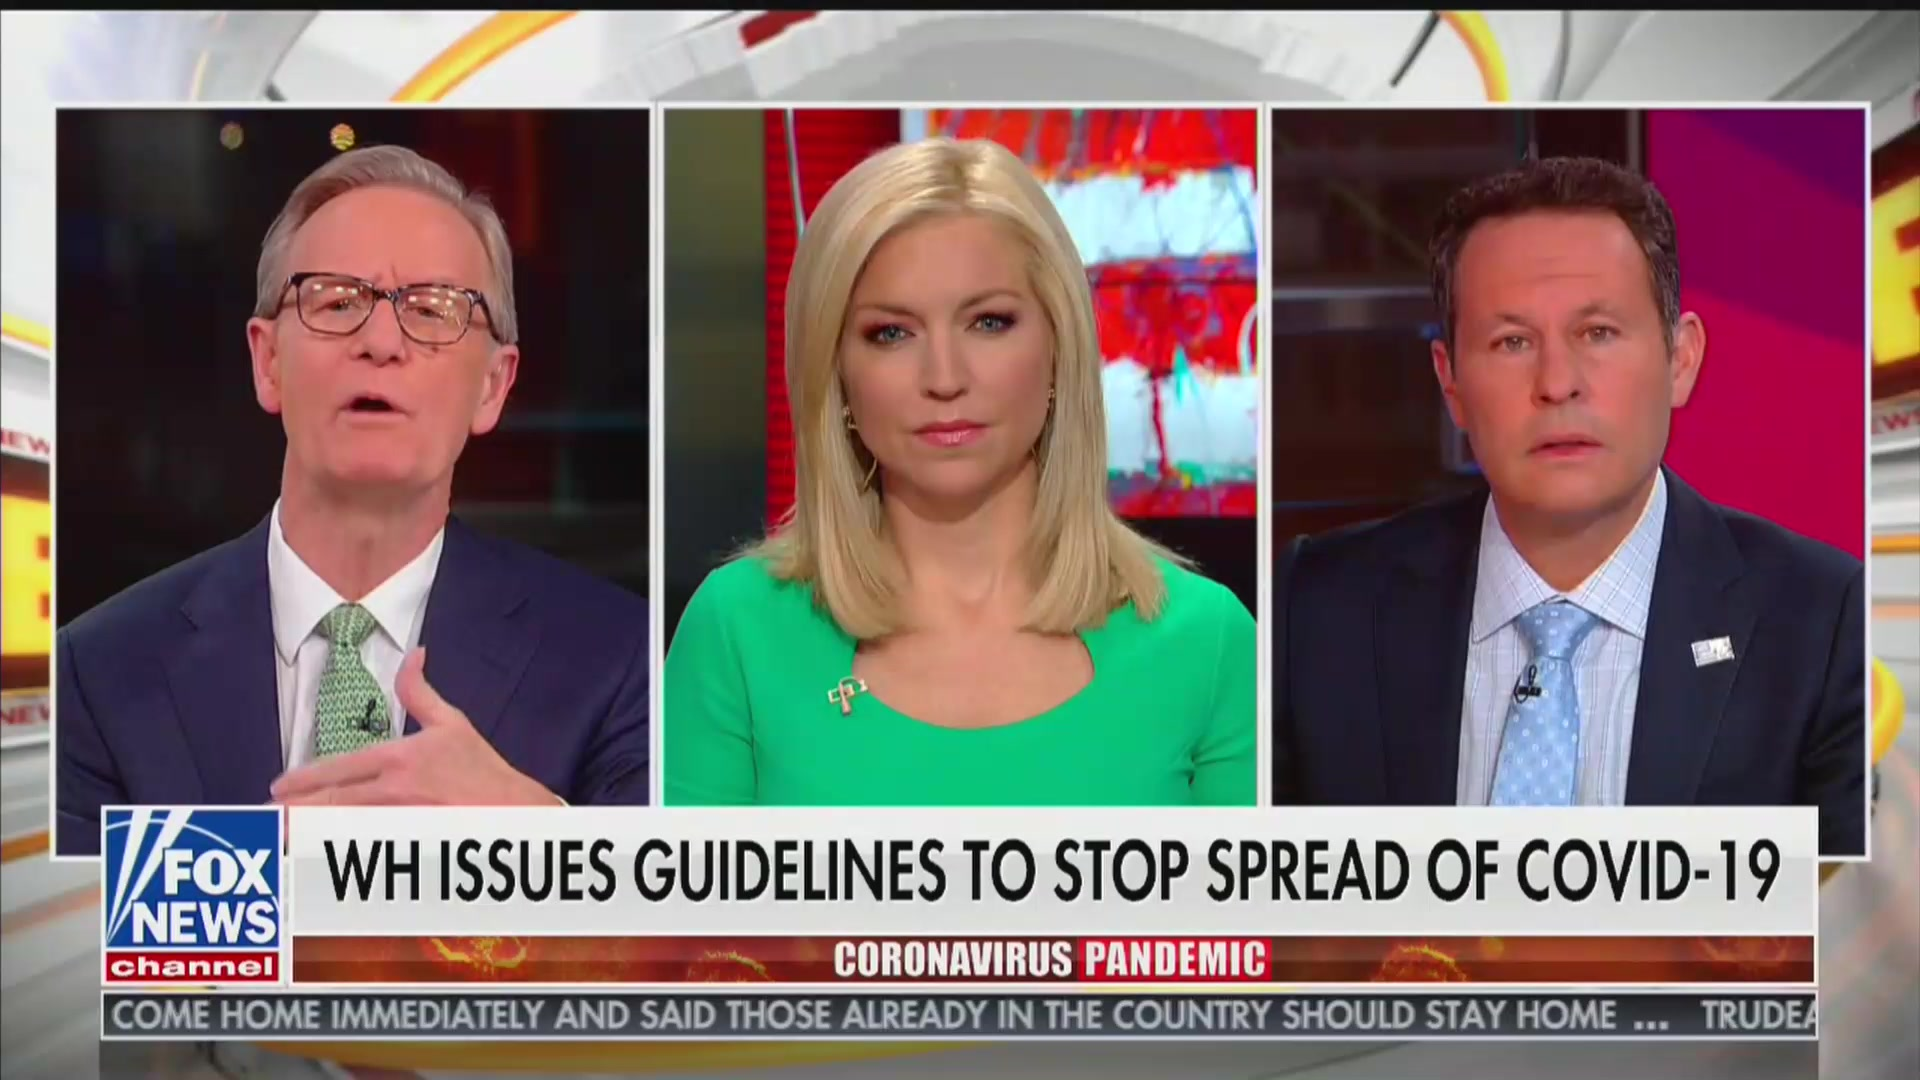 Fox News Host Who Encouraged Viewers to Fly Now Taking Coronavirus Very Seriously